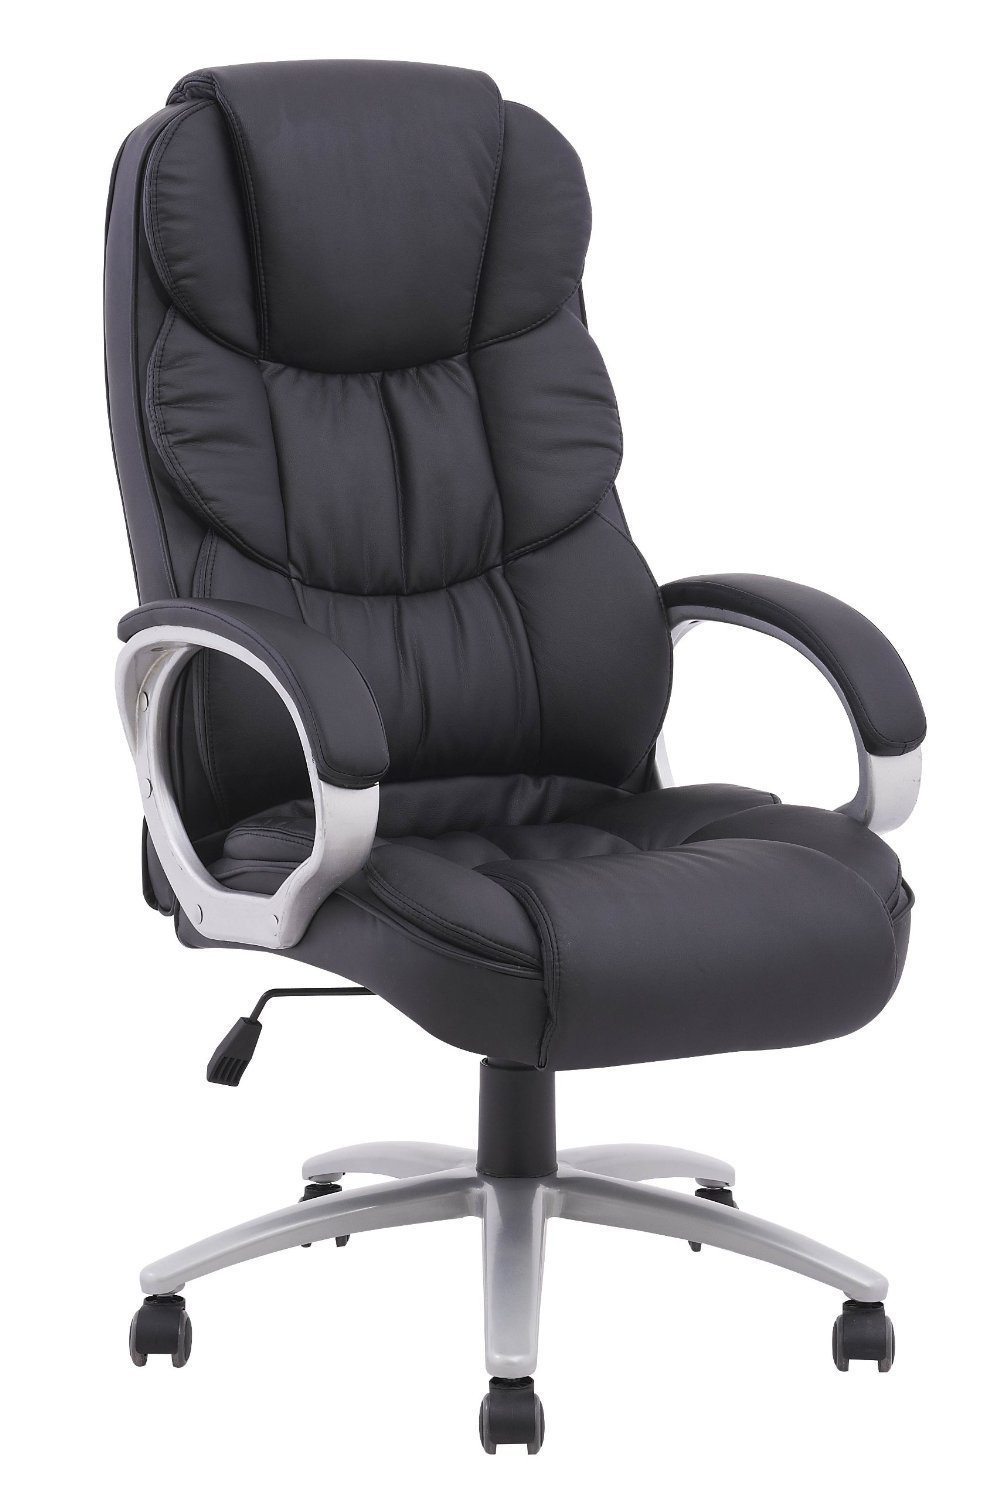 Top 10 Best Most Popular Ergonomic Office Chairs in 2019